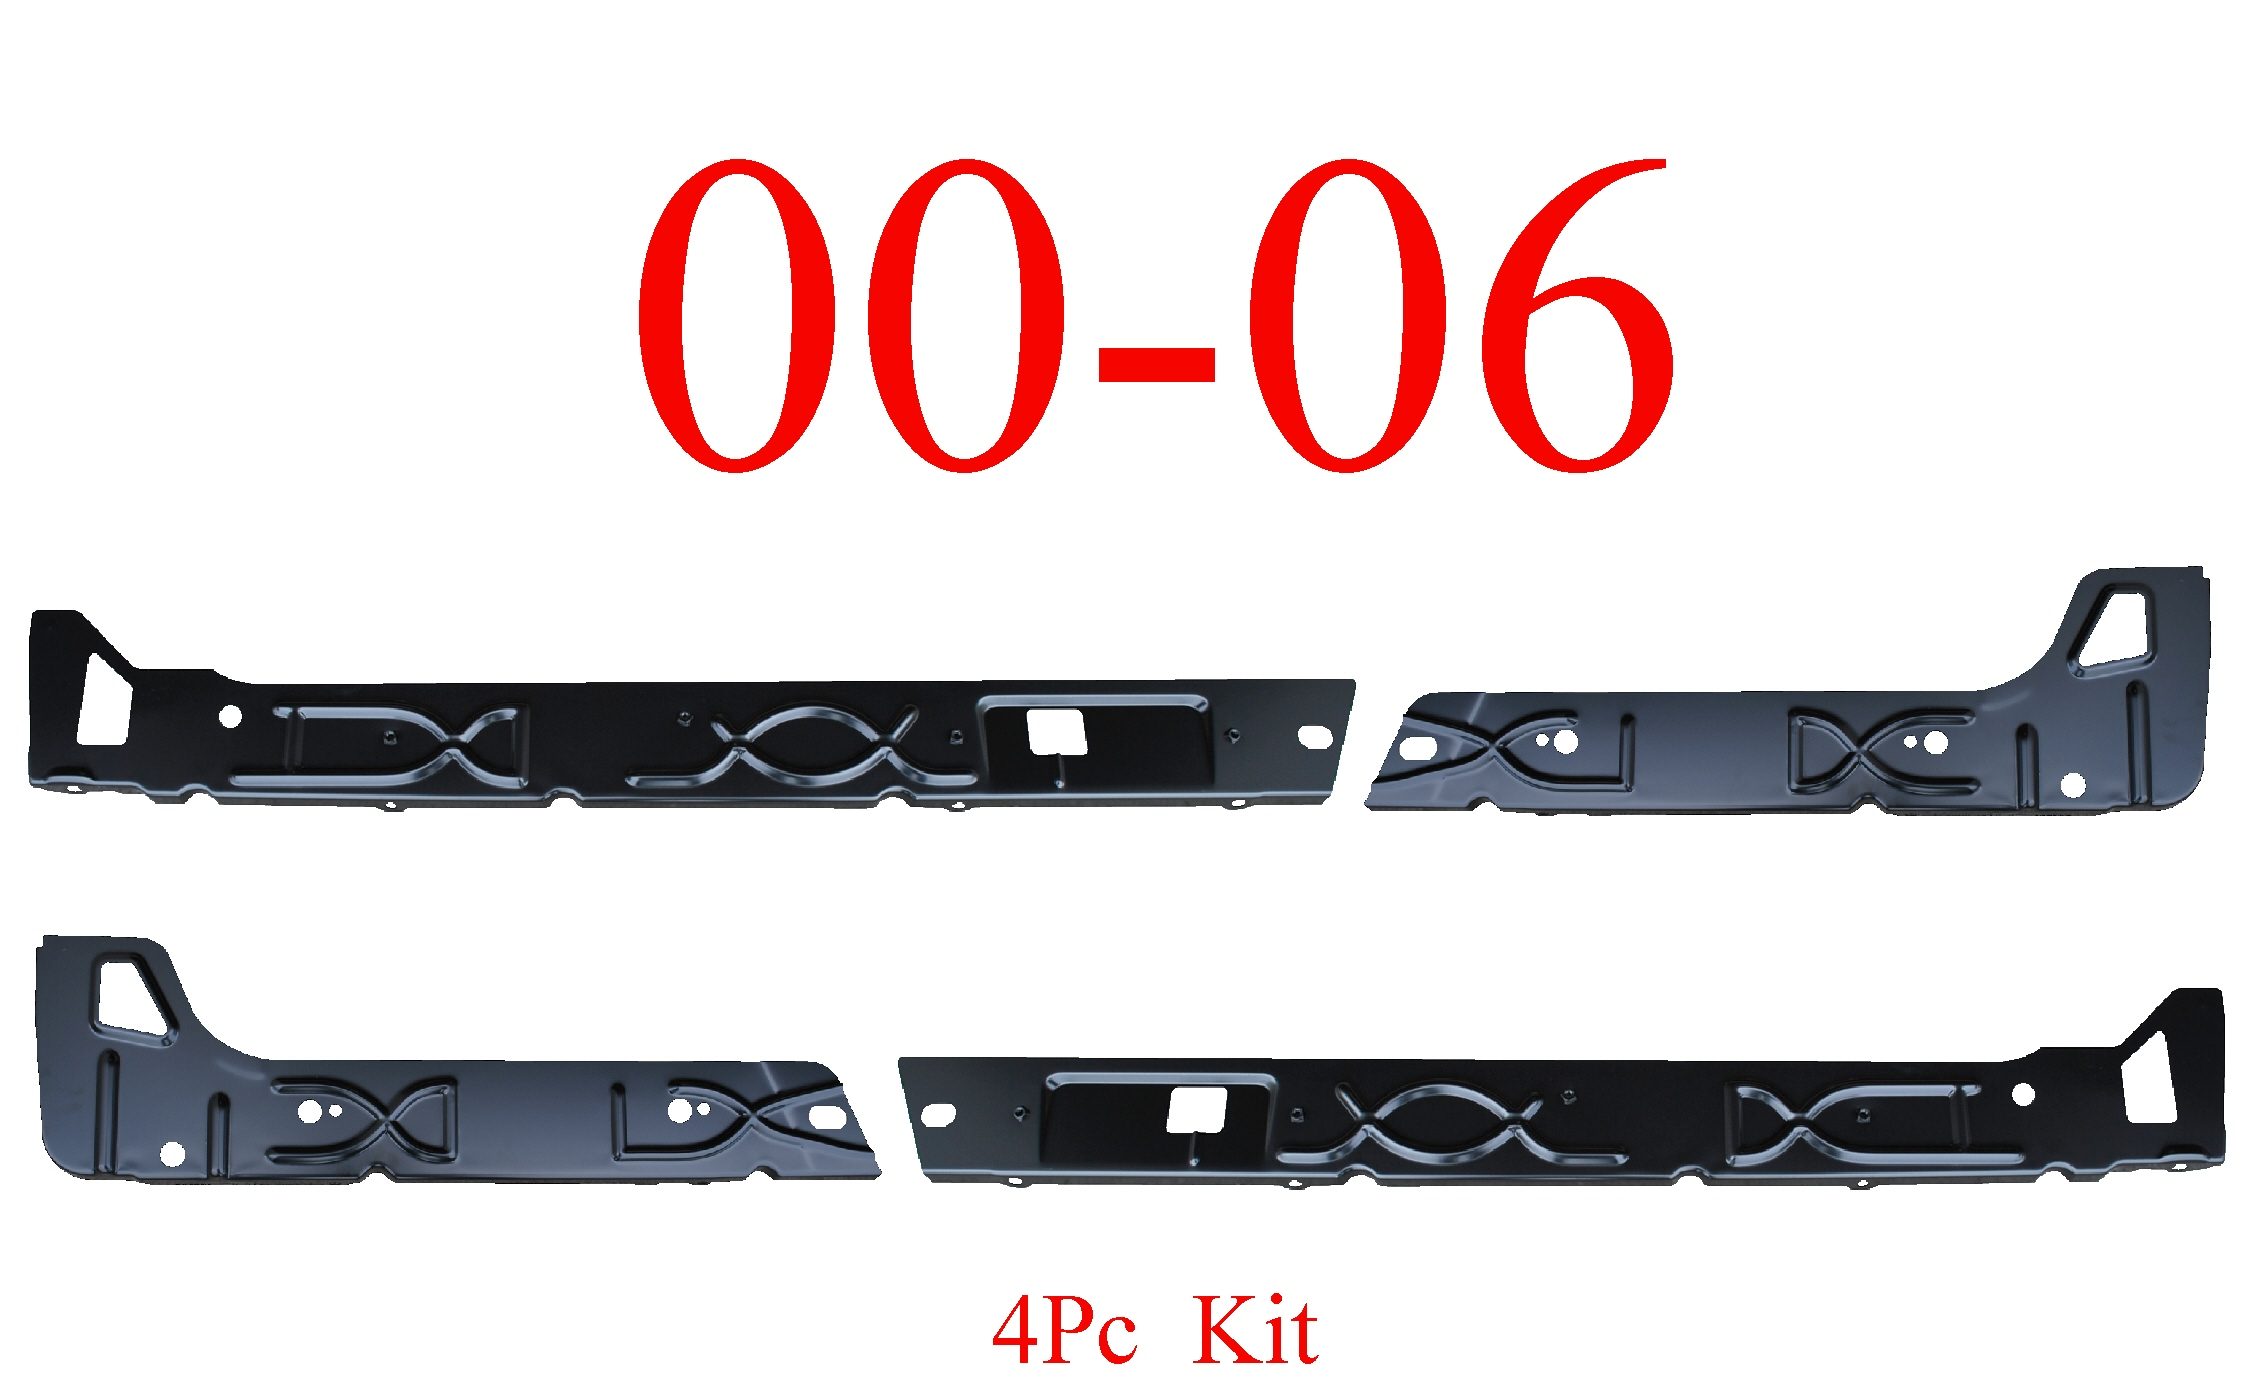 00-06 Chevy SUV 4Pc Inner Rocker Panel